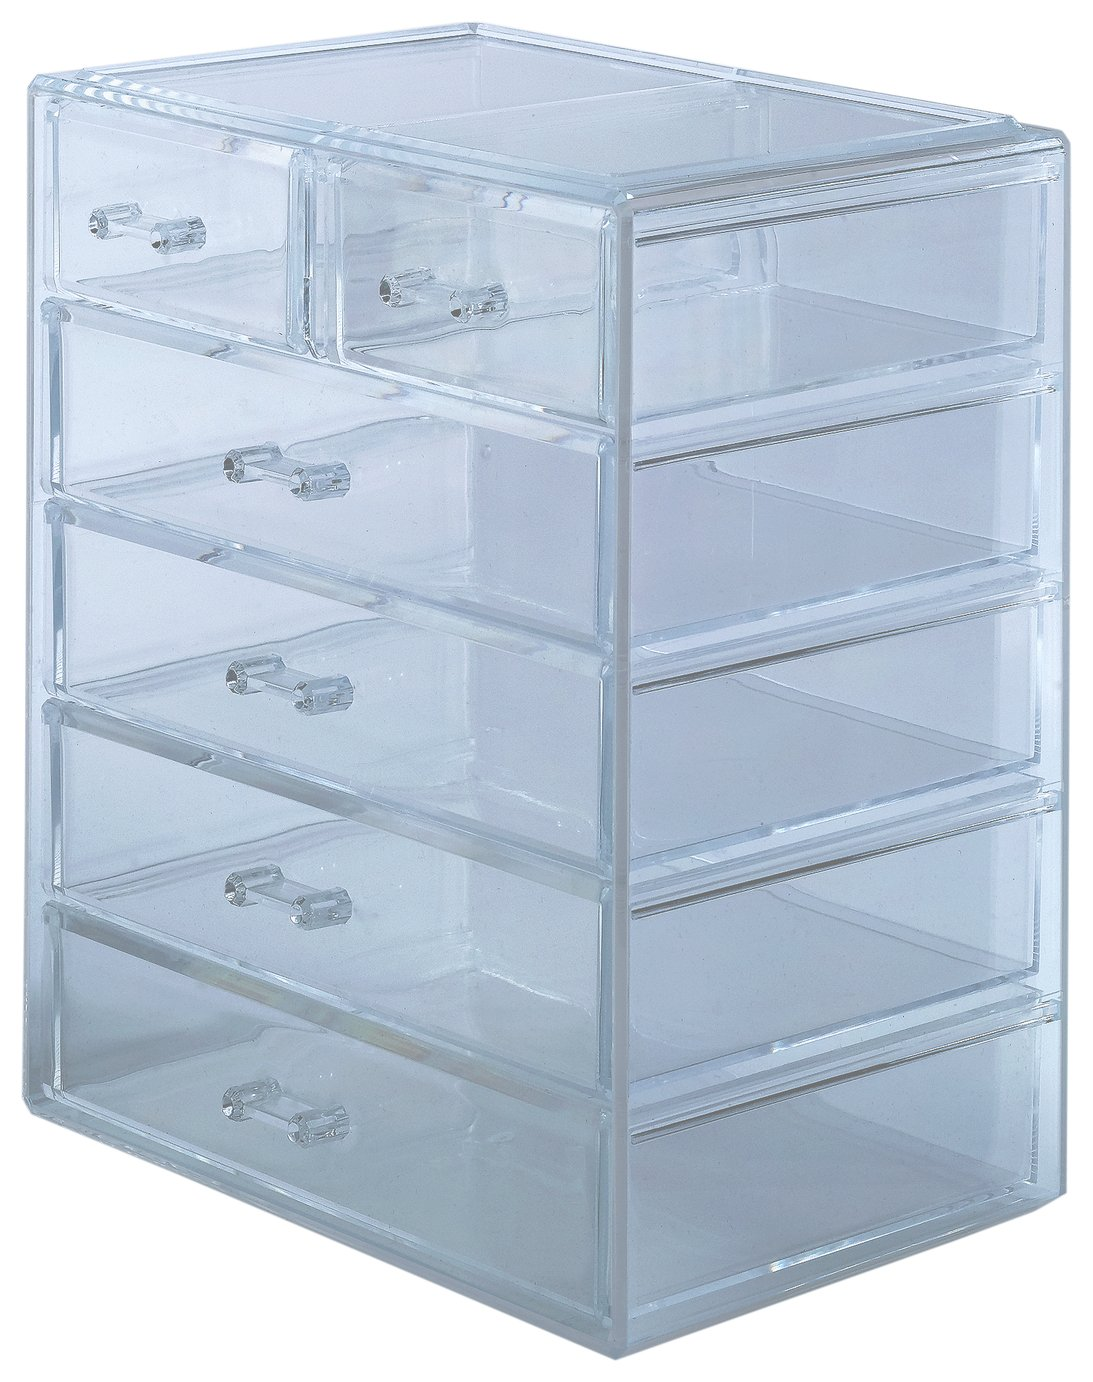 Danielle Creations Acrylic Fashion Drawer Cosmetic Organiser